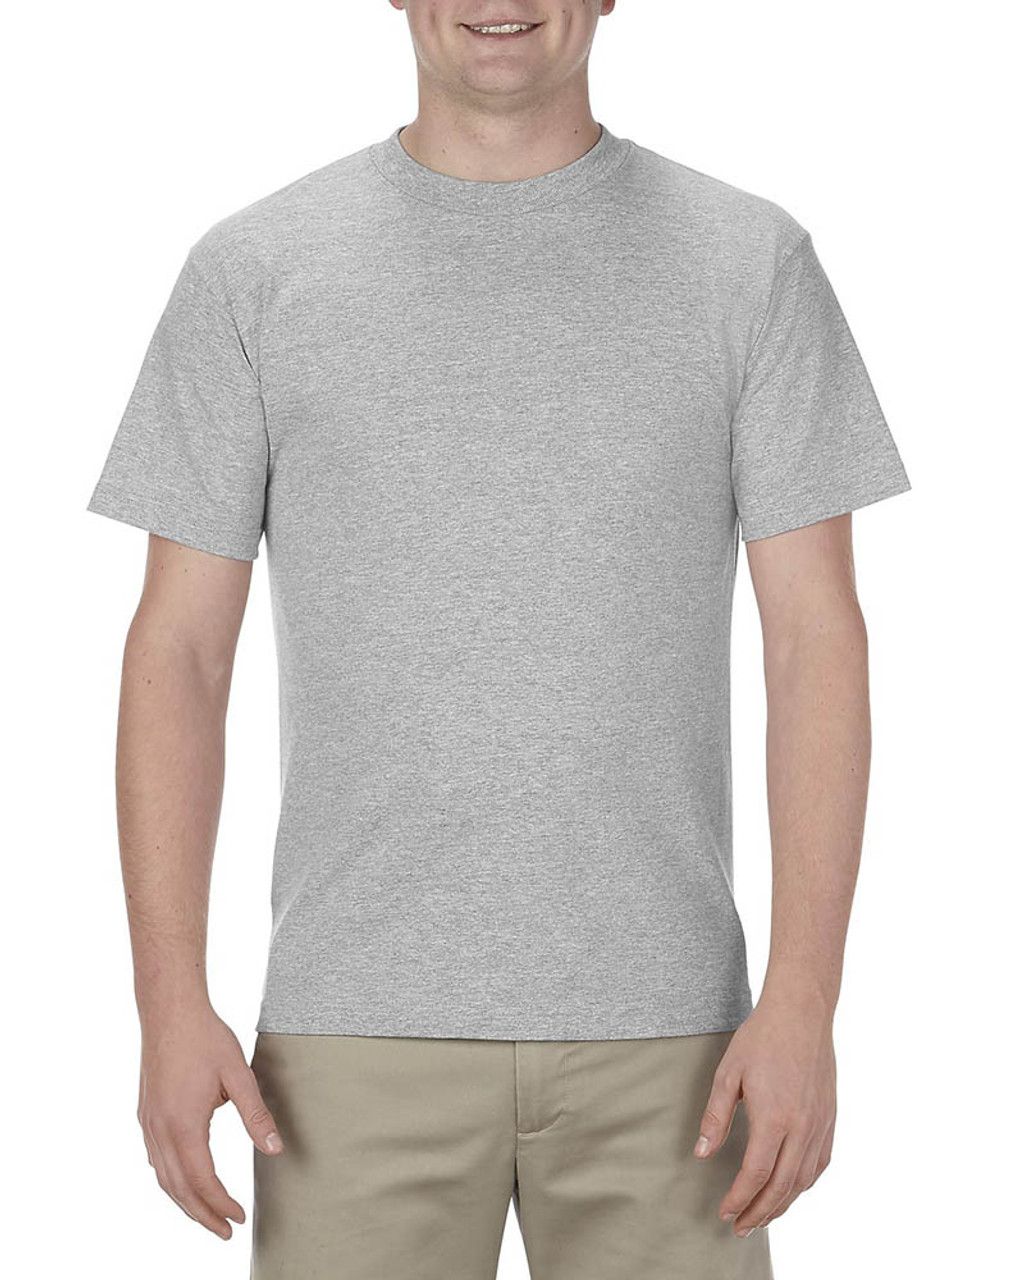 Athletic Heather - AL1301 Alstyle Adult 6.0 oz., 100% Cotton T-Shirt   BlankClothing.ca